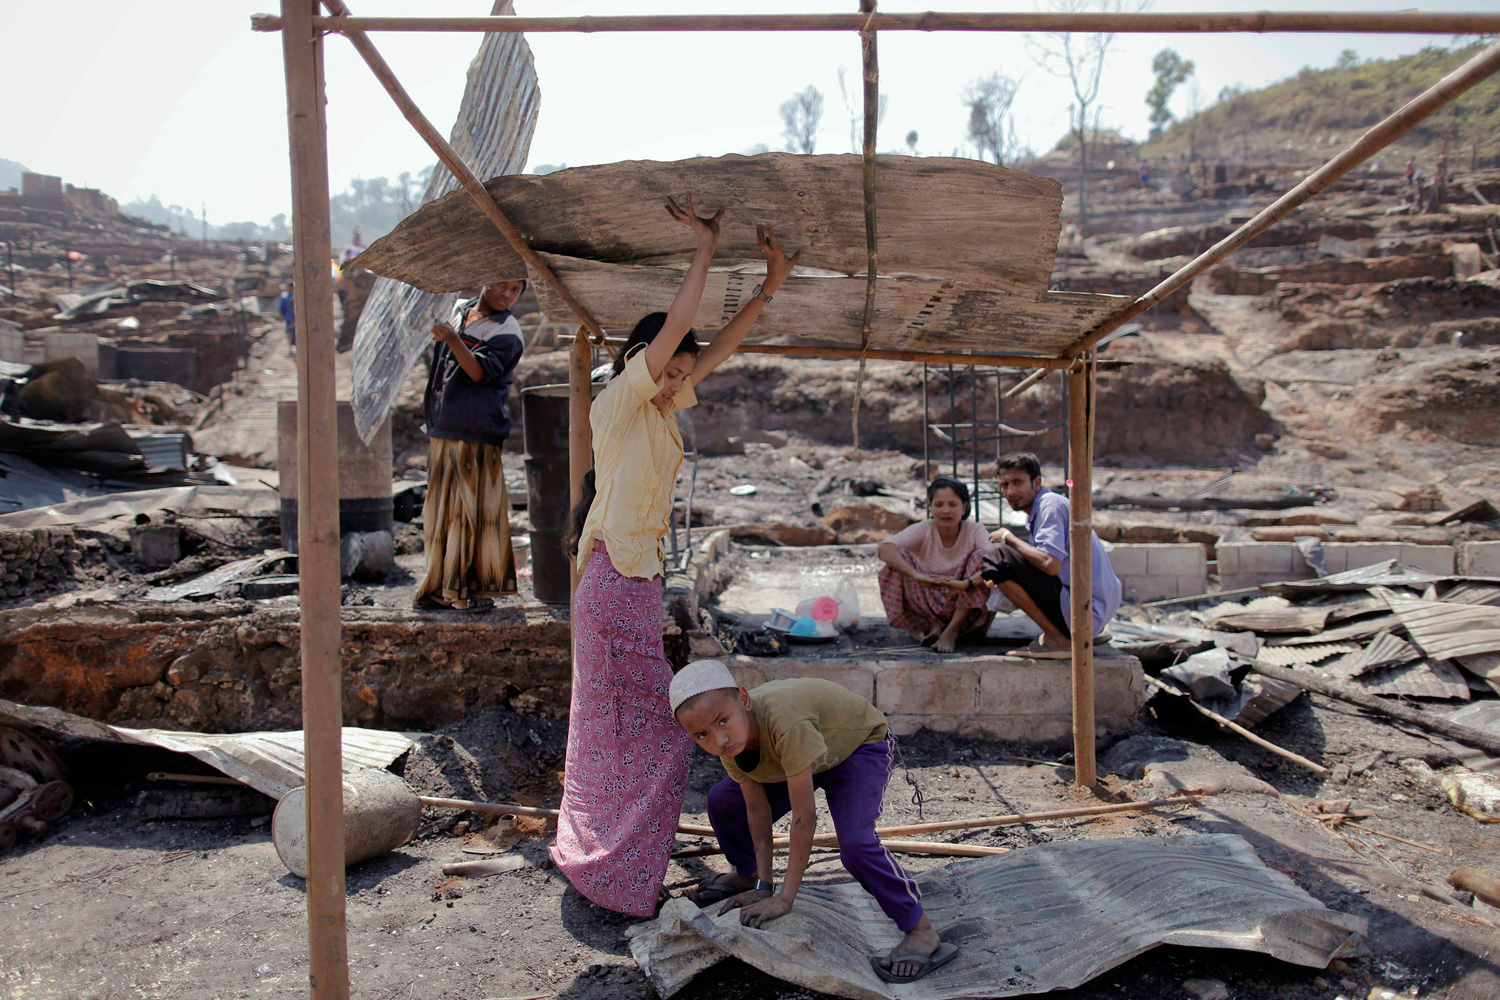 Feb. 24, 2012. Refugees make a temporary shelter at the ruins of their burnt home at the Um-Piam refugee camp near Mae Sot, Thailand.